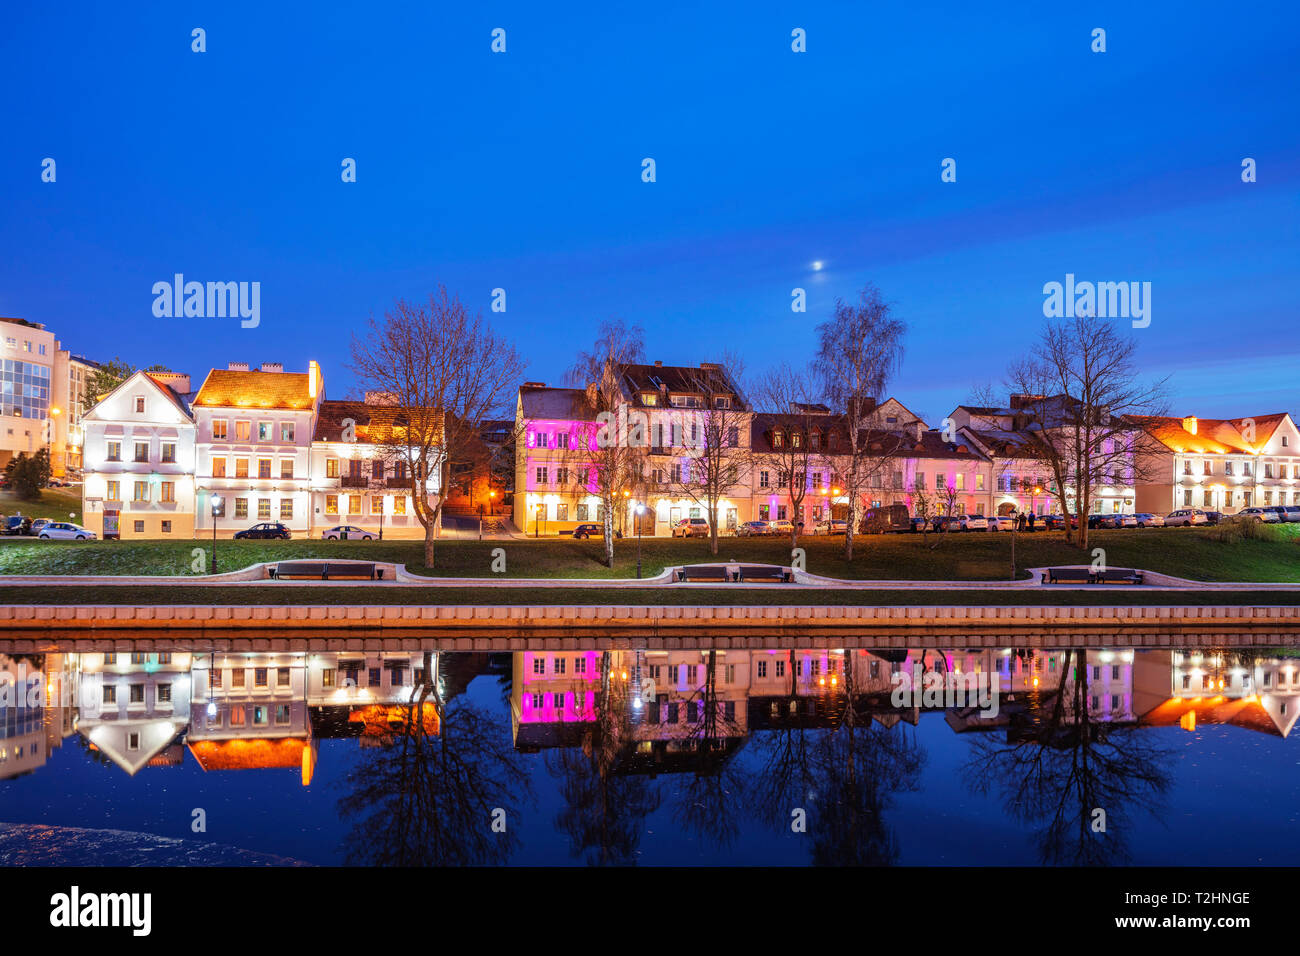 Trinity Suburb reflecting in the Svislach river, Minsk, Belarus, Eastern Europe - Stock Image